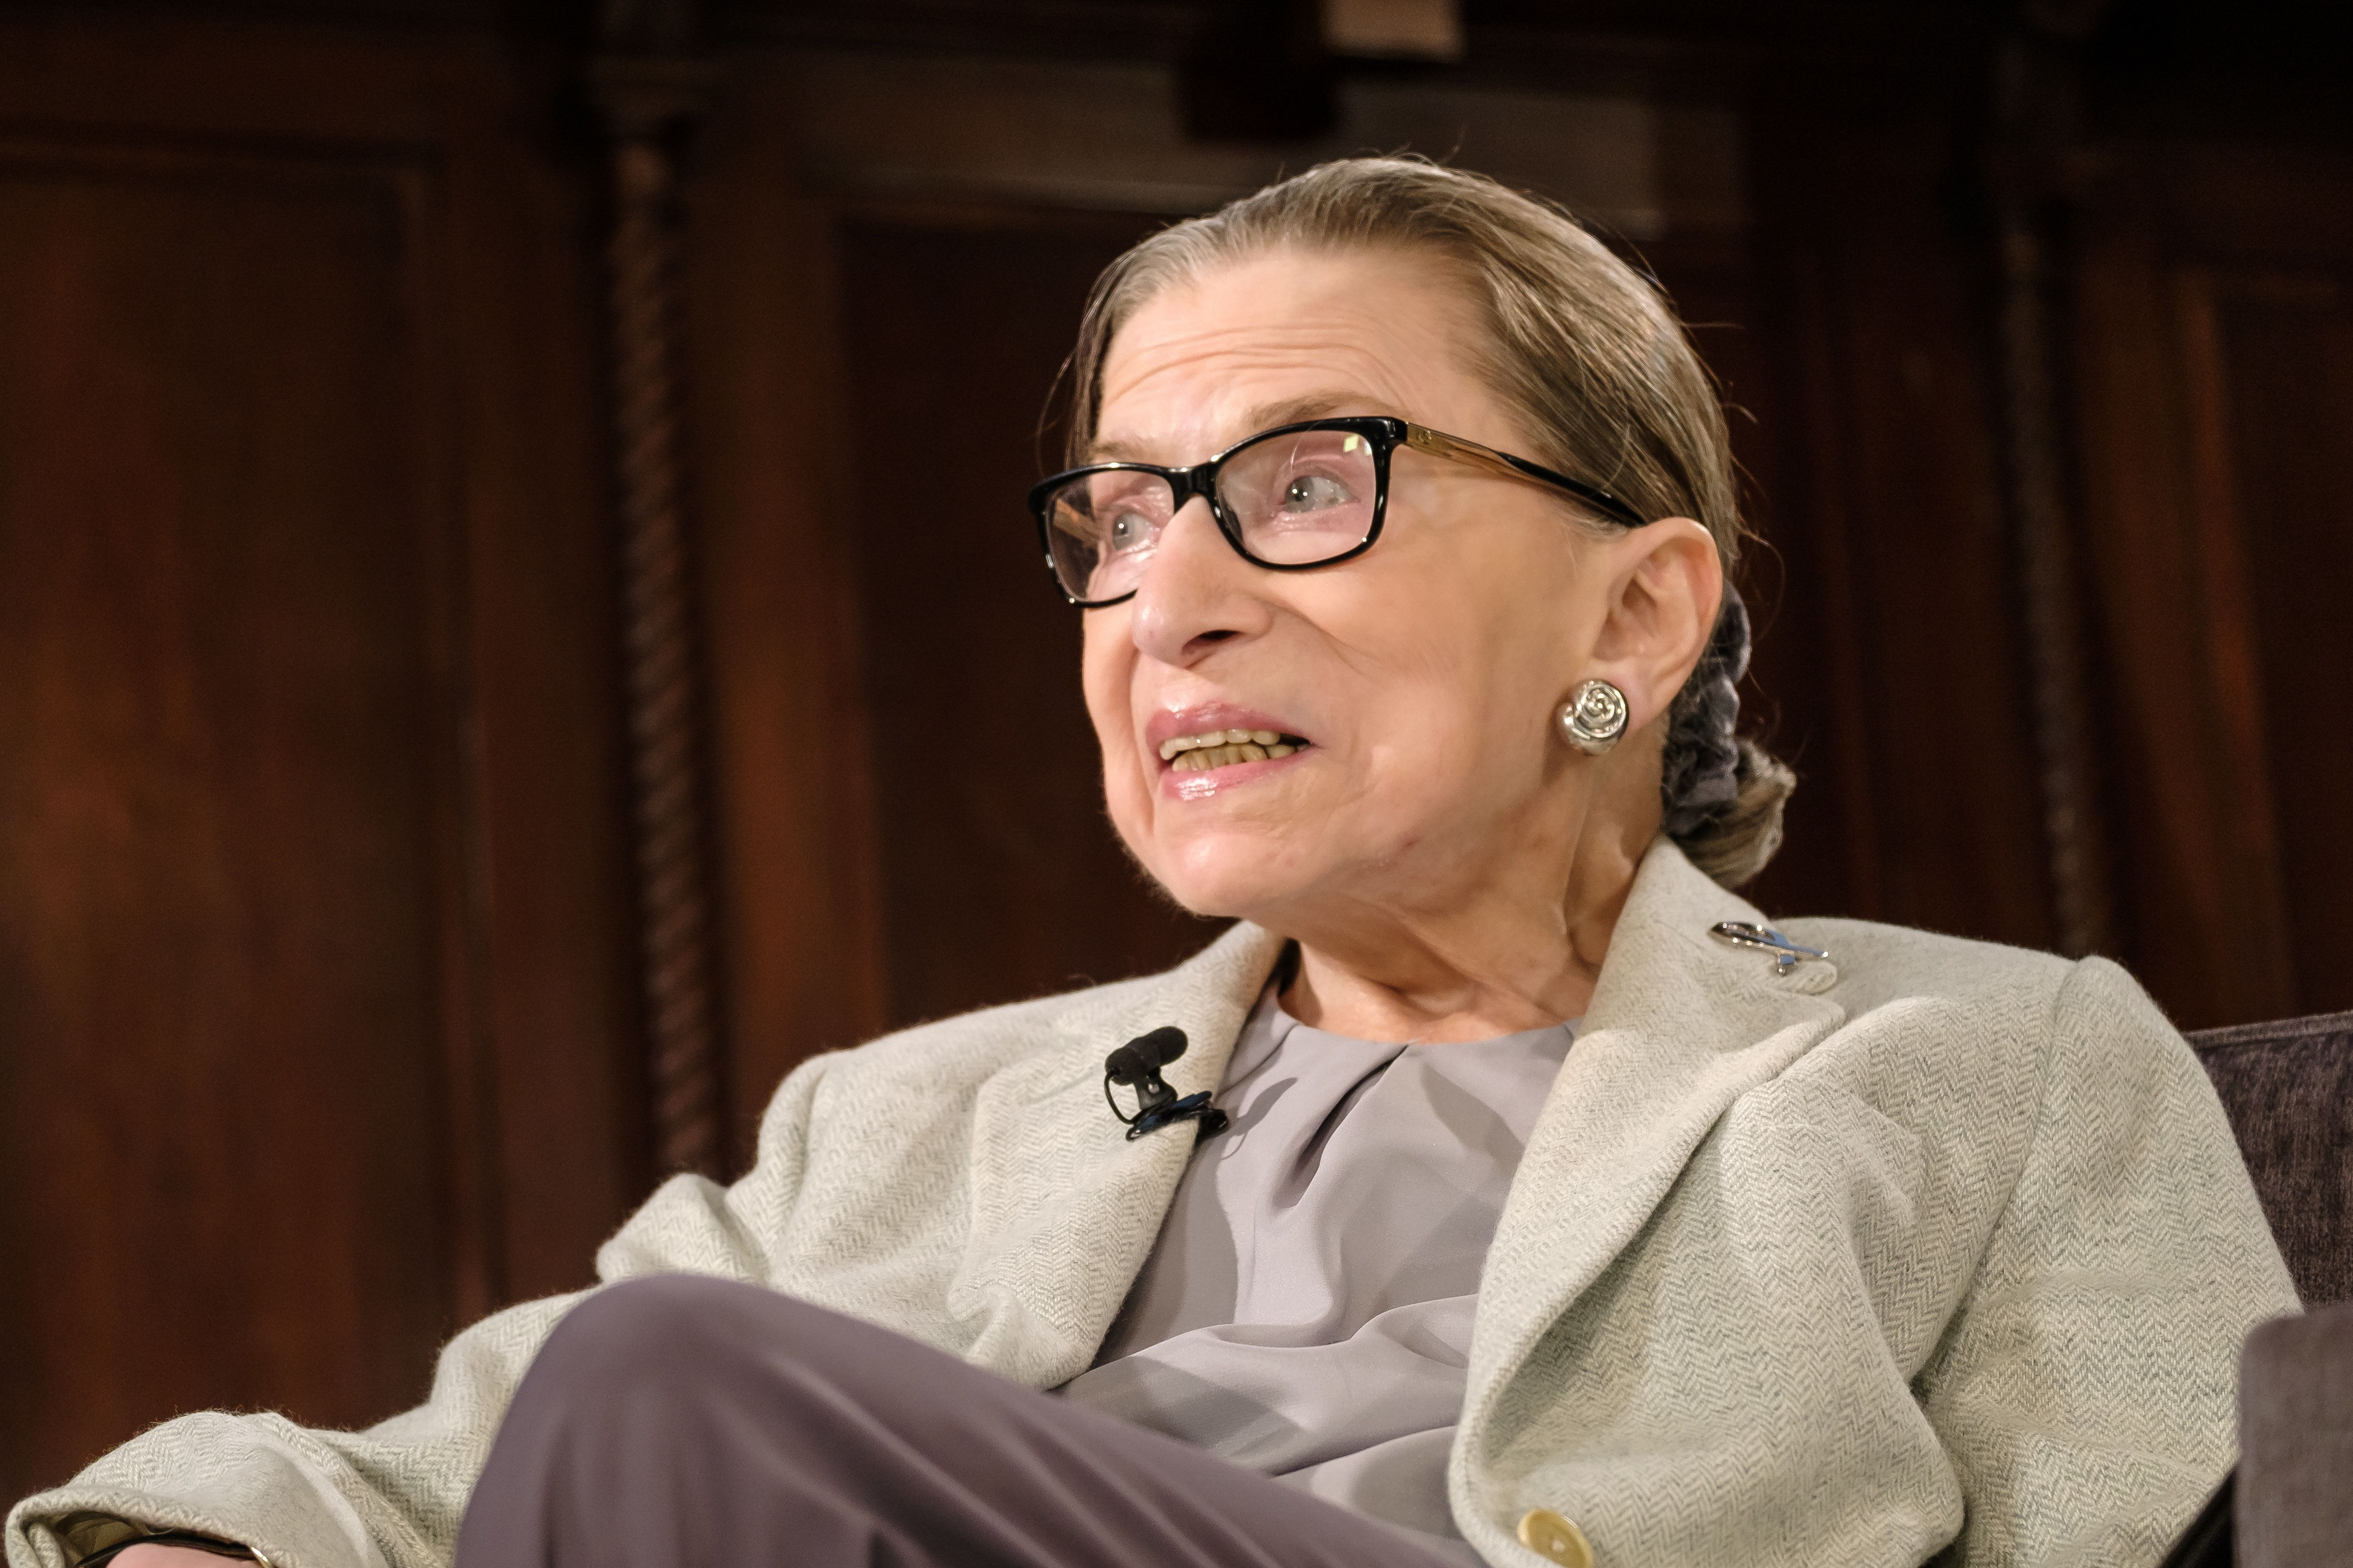 Ruth Bader Ginsburg Makes First Public Appearance Since